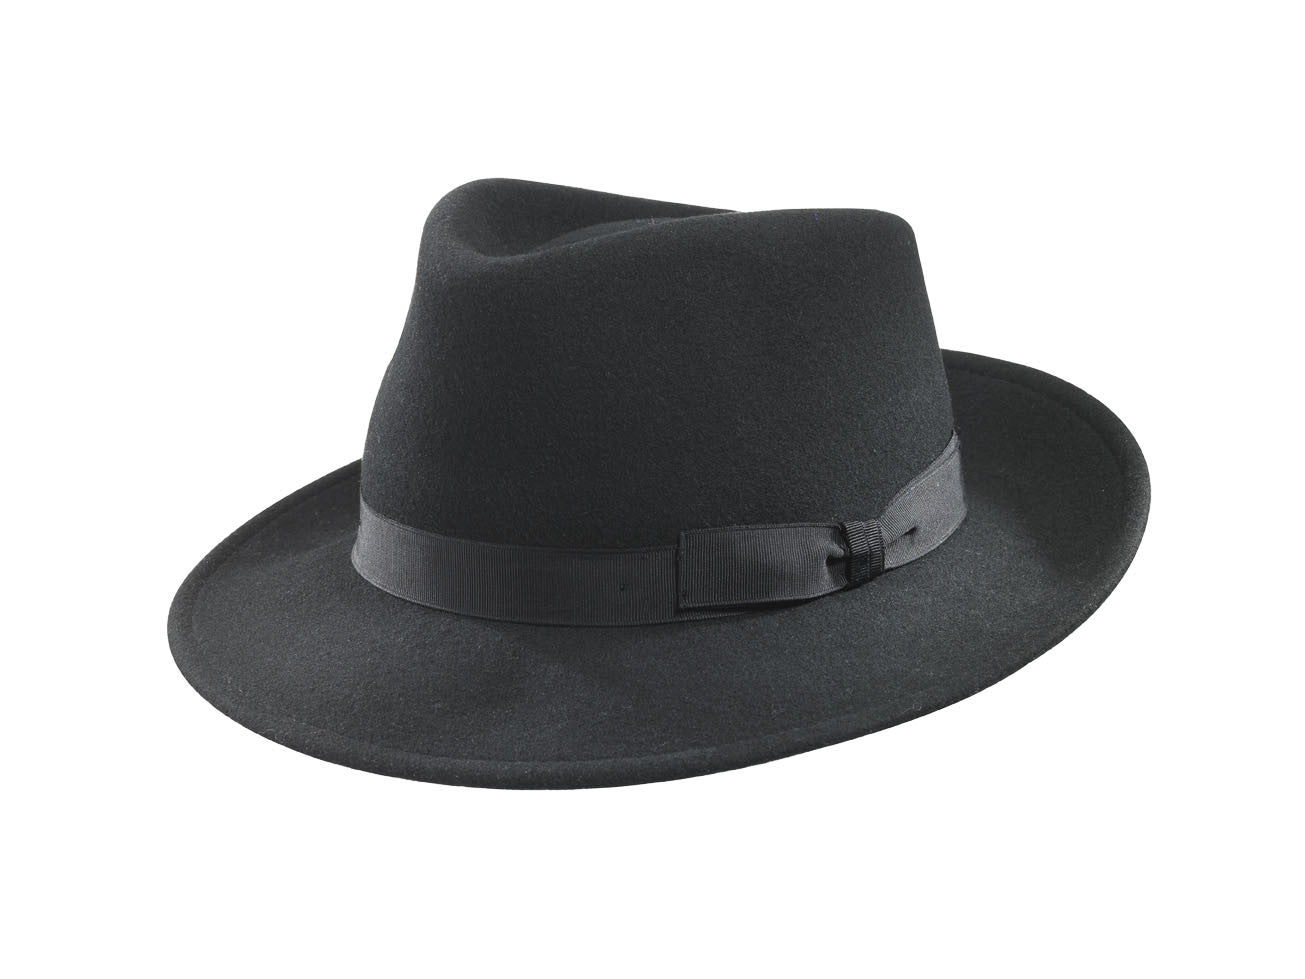 THE BELMONT - New Stock Just Arrived! - Stefeno Hats 6991a2fb5ae